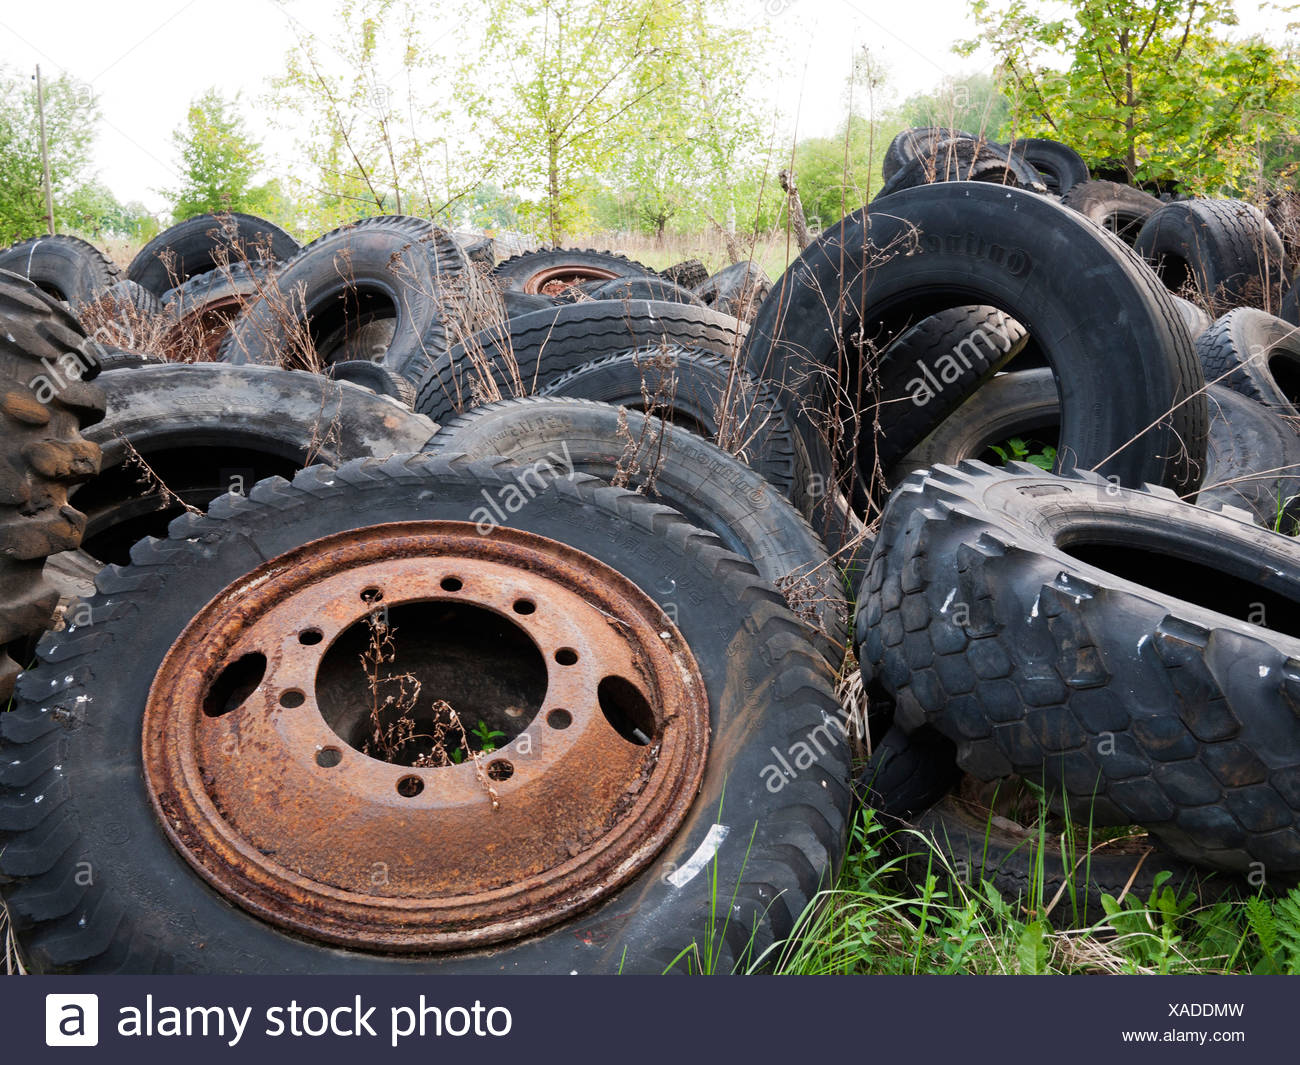 Old tyres littering the landscape - Stock Image